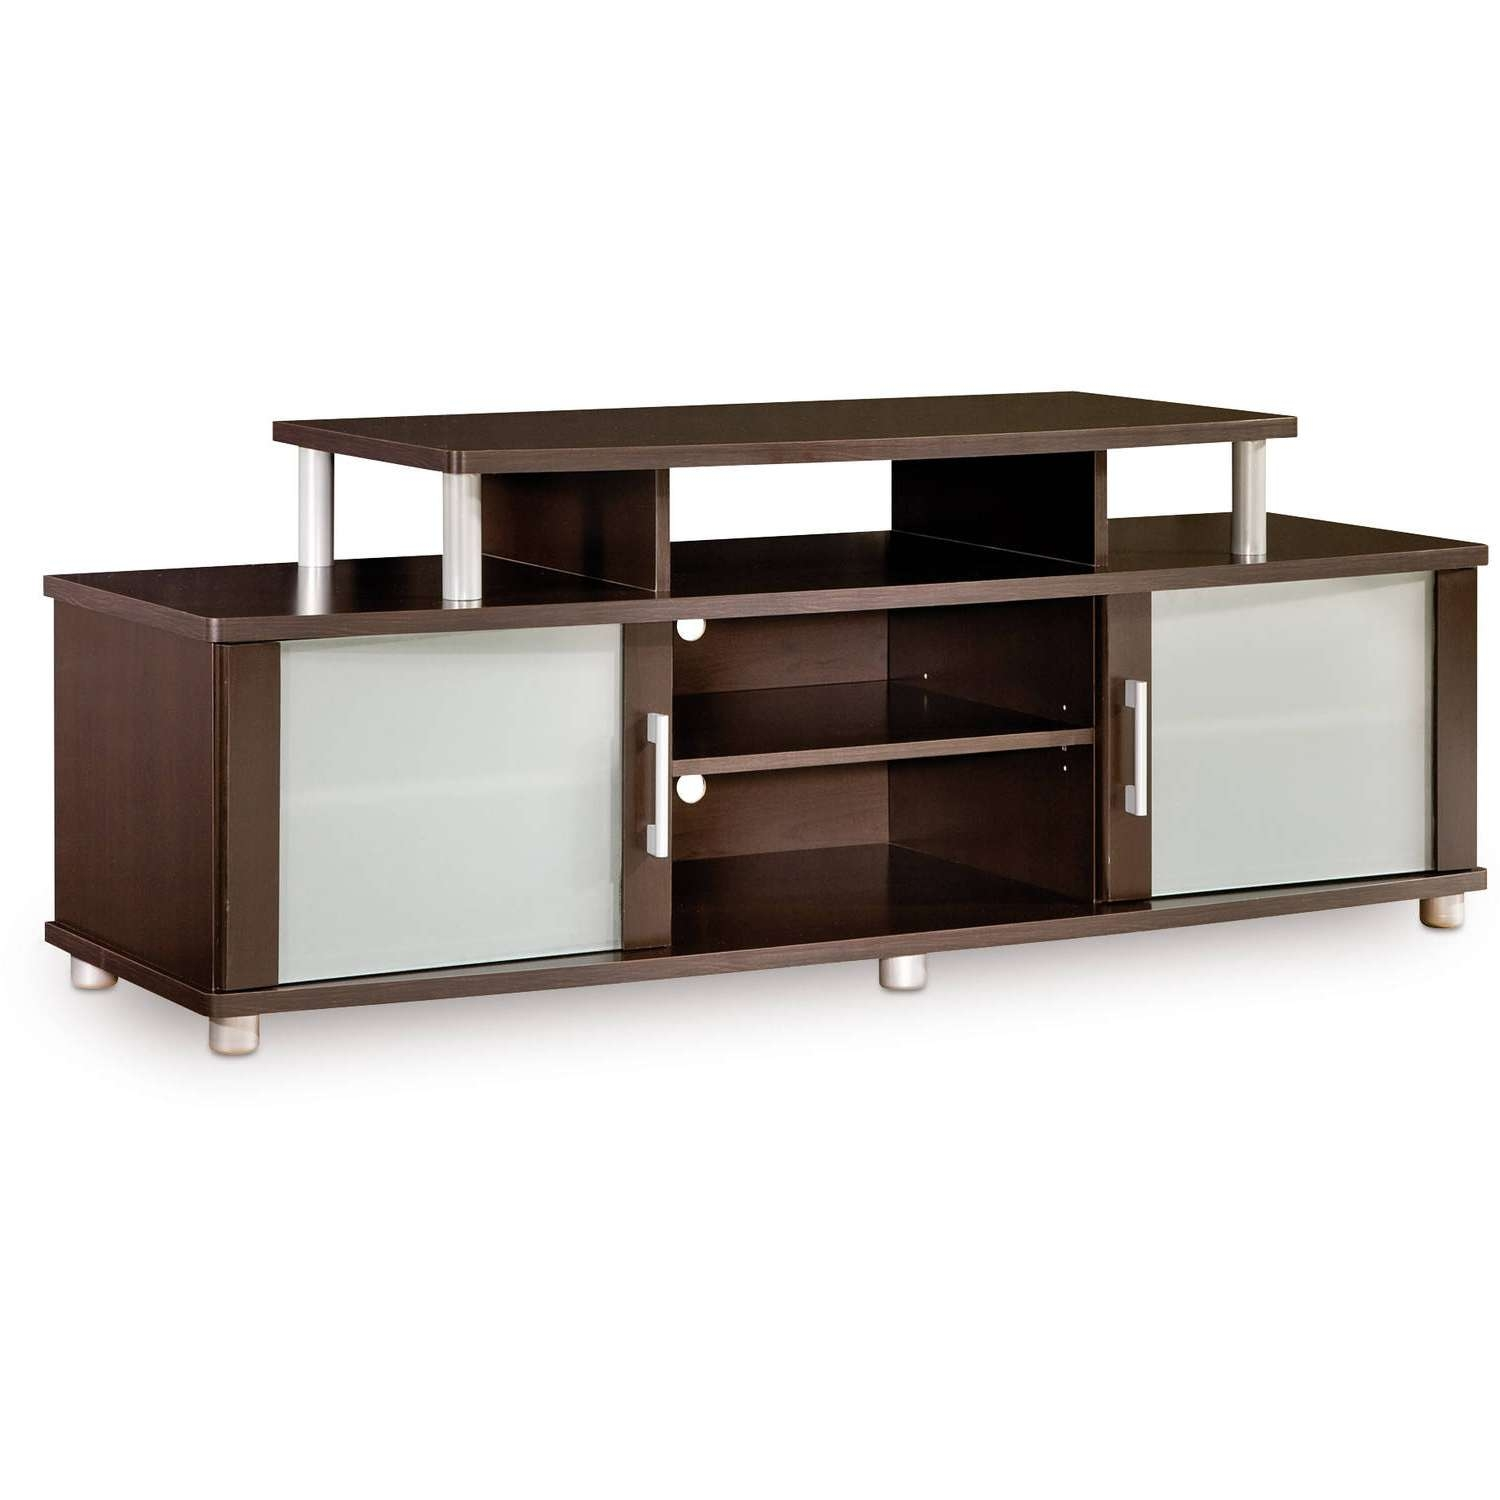 "South Shore City Life Tv Stand, For Tvs Up To 50"", Multiple Within Contemporary Wood Tv Stands (View 10 of 15)"